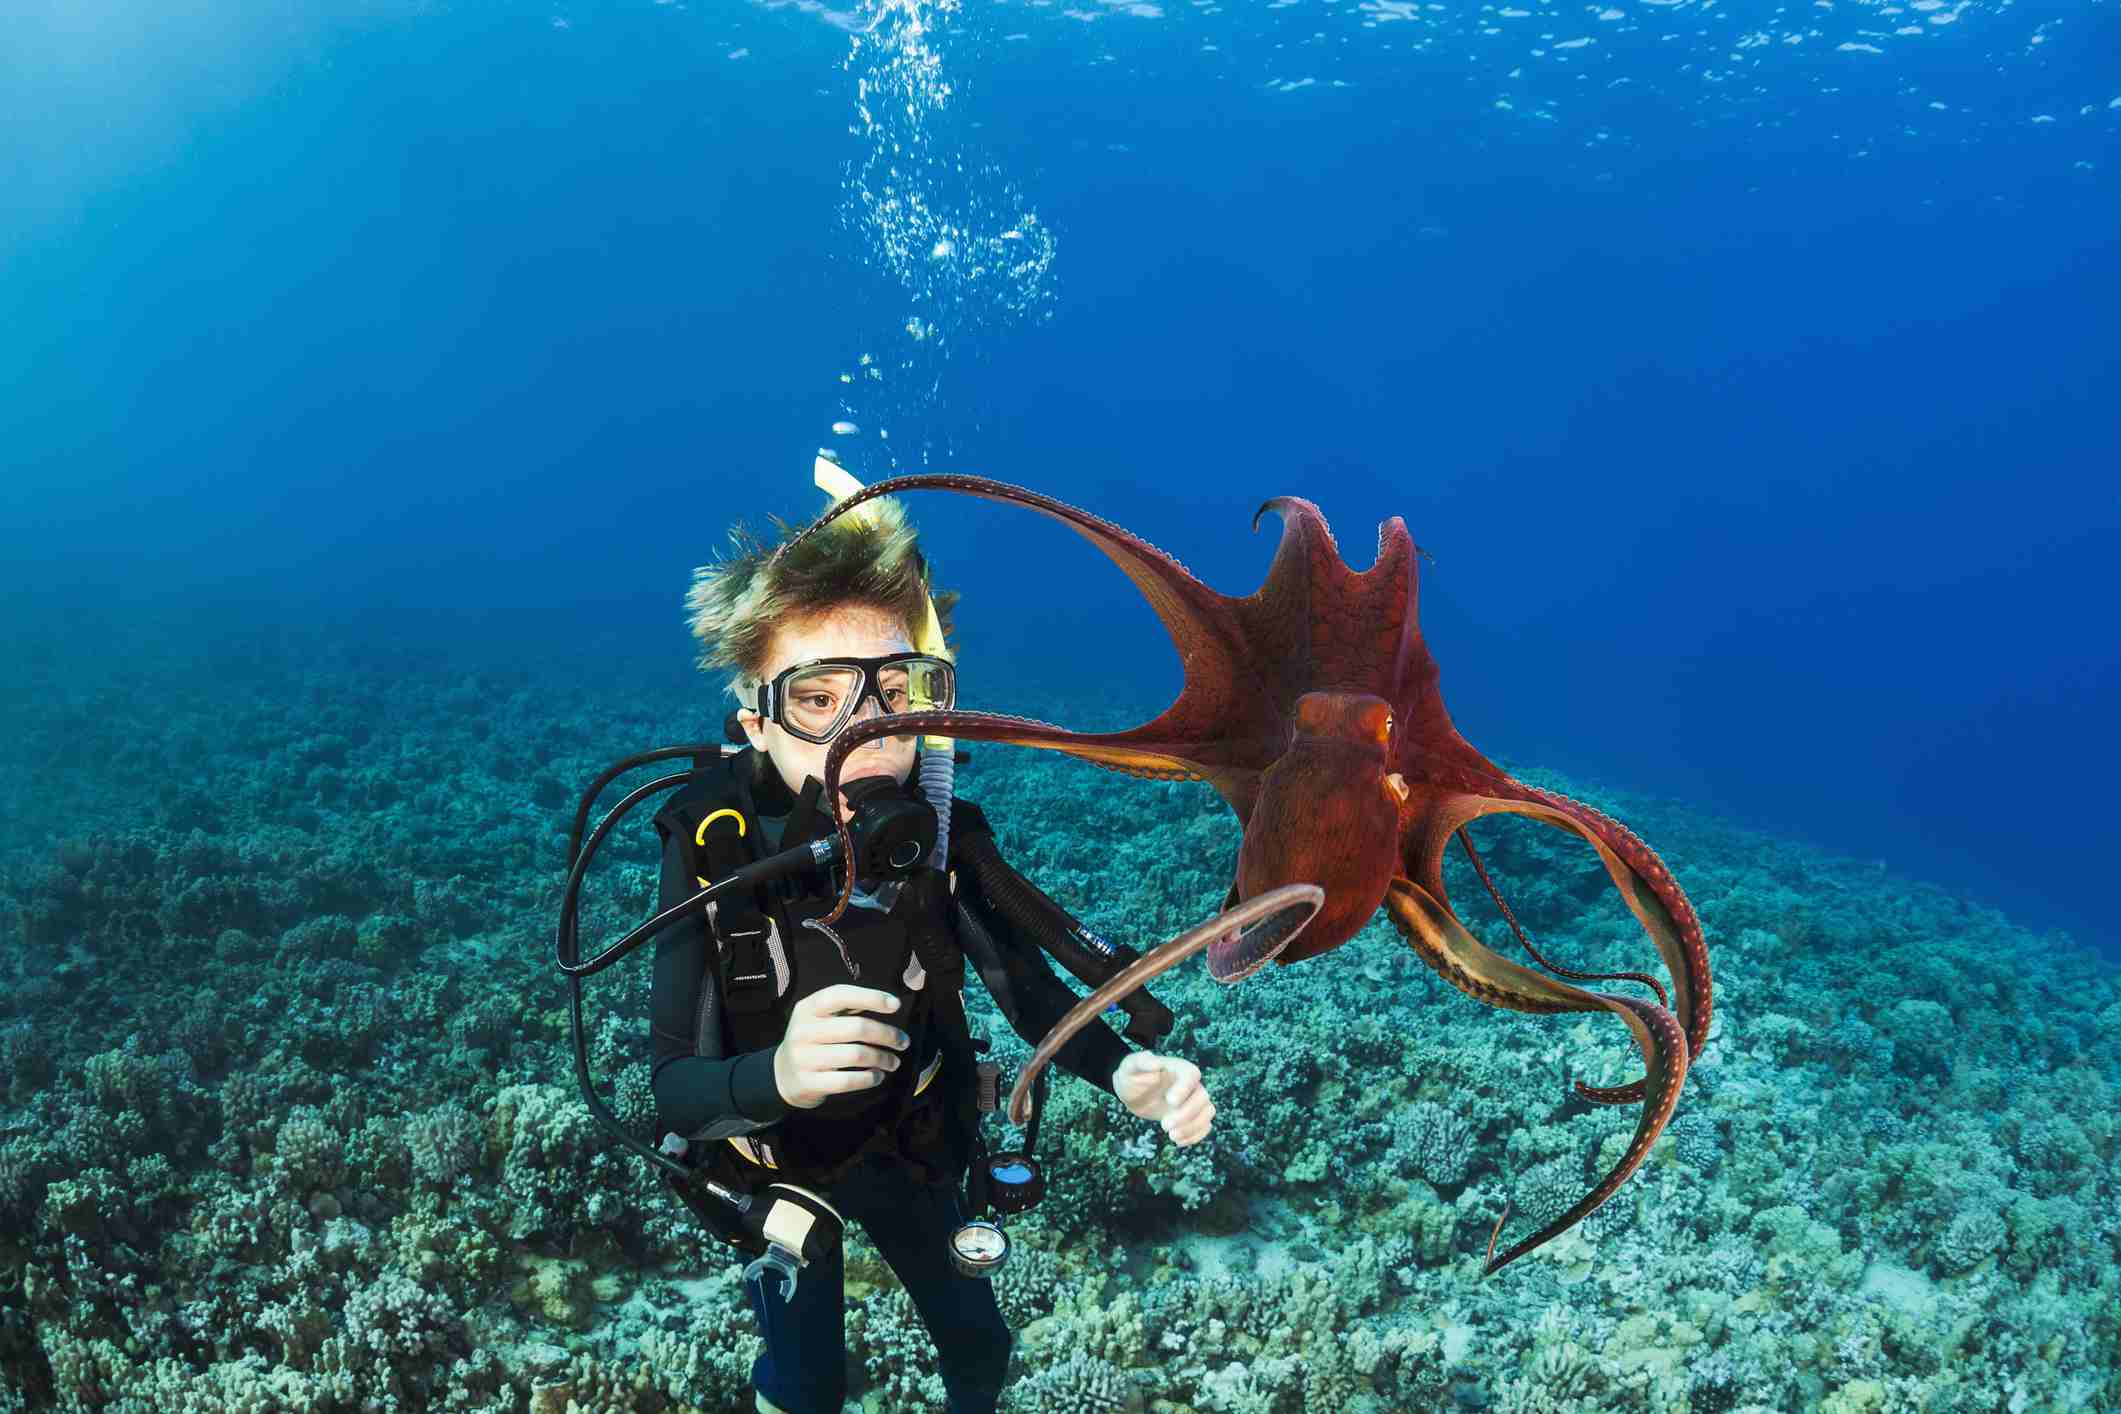 Scuba diving with octopus